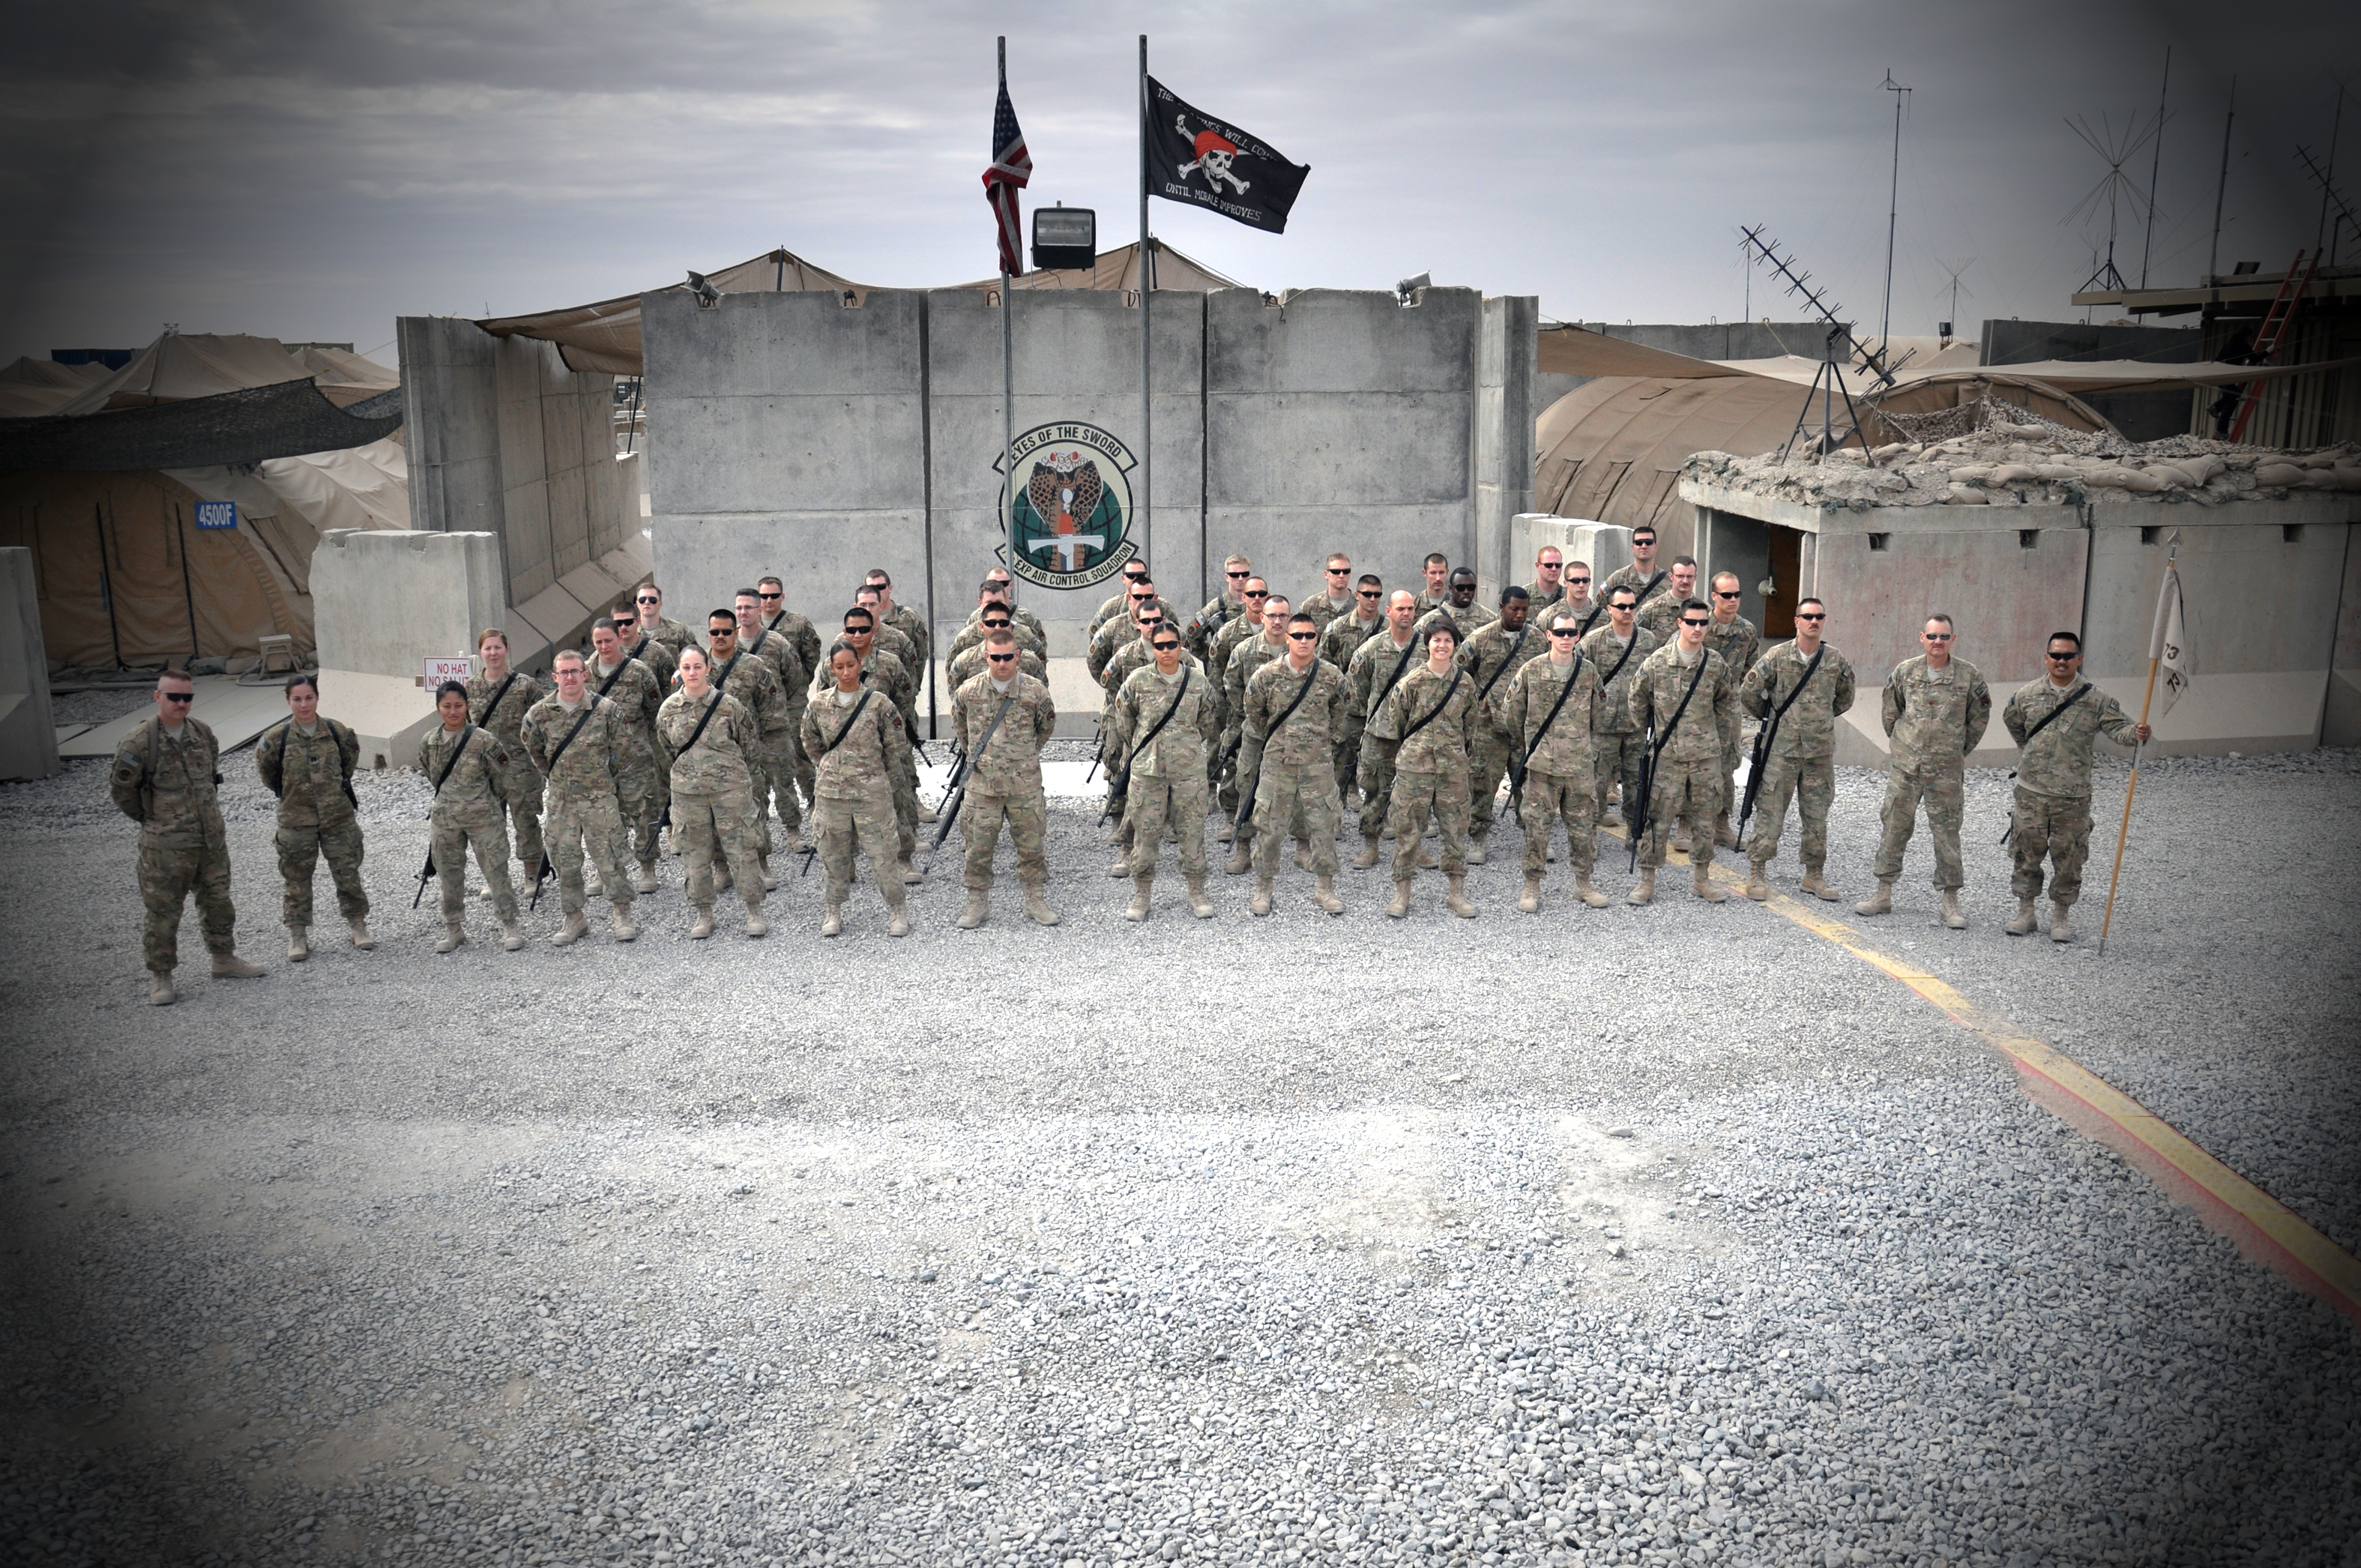 Craig's Troop in Afghanistan